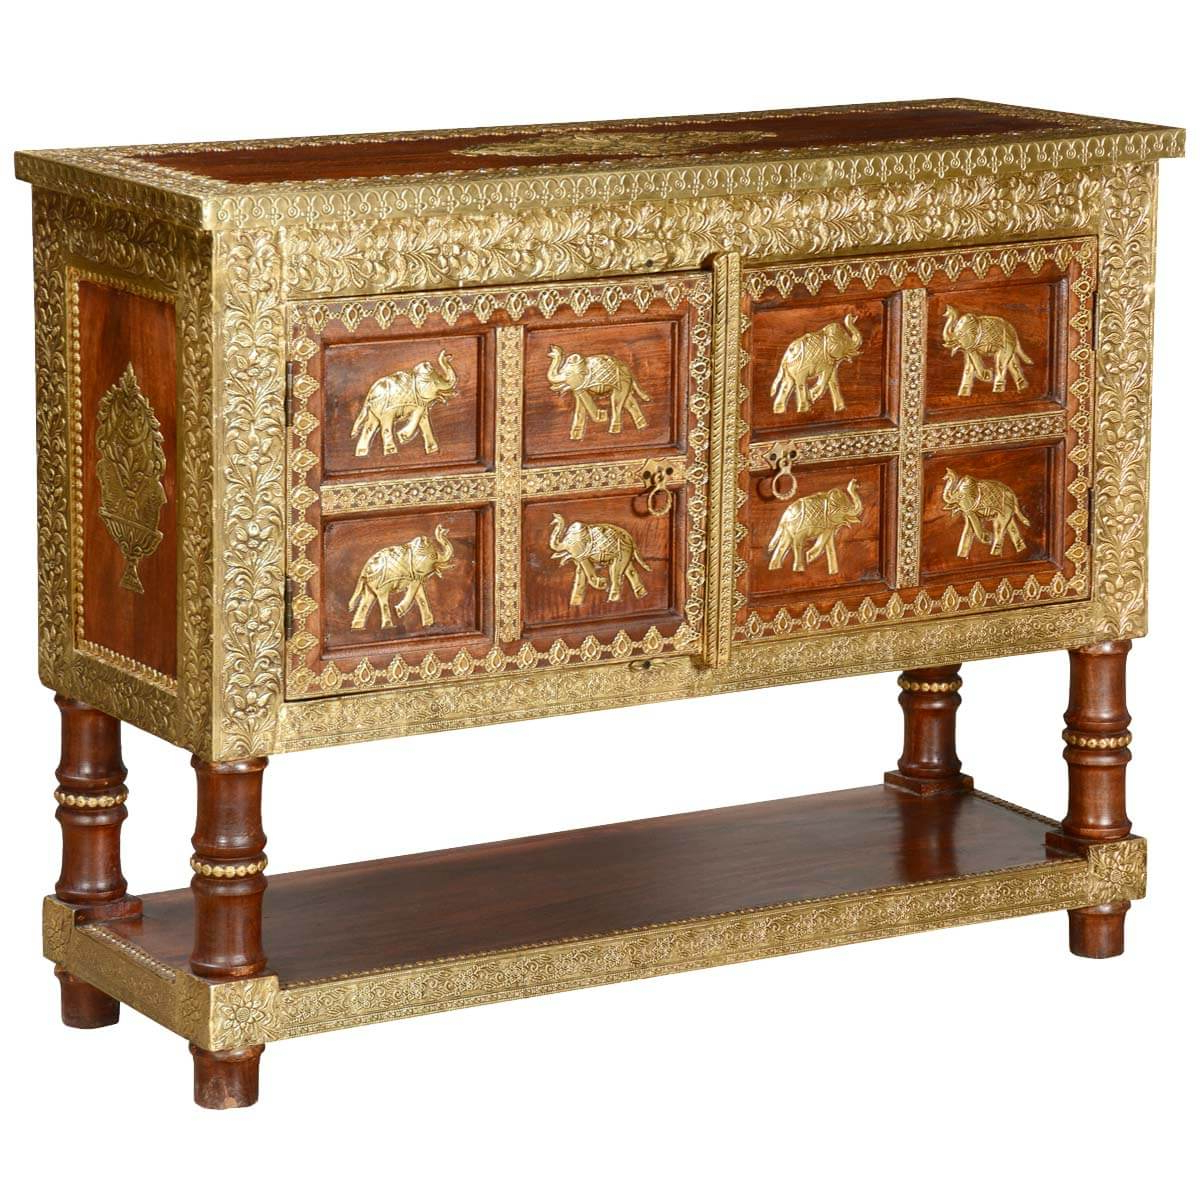 8 Golden Elephants Mango Wood & Brass Inlay Console Table Chest Inside Orange Inlay Console Tables (Gallery 11 of 20)